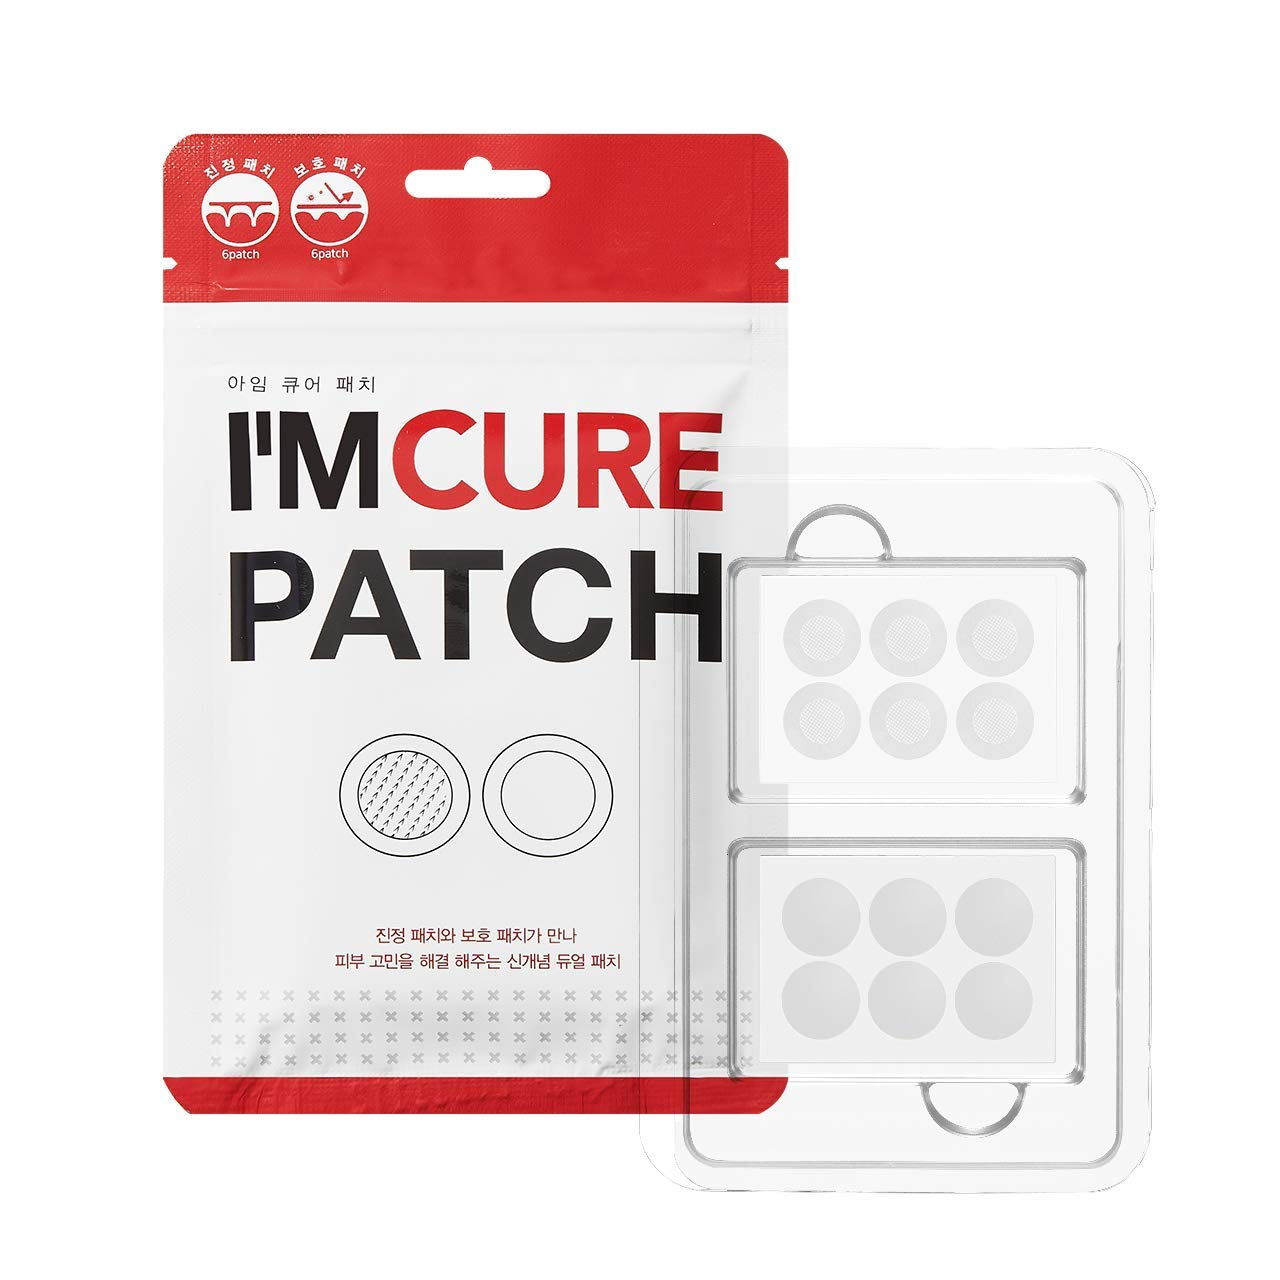 KARATICA I'M CURE, Microneedle 6ea + Hydrocolloid 6ea PATCH Acne Pimple Healing, Salicylic Acid, 12 patches, 1 Sheet by K KARATICA